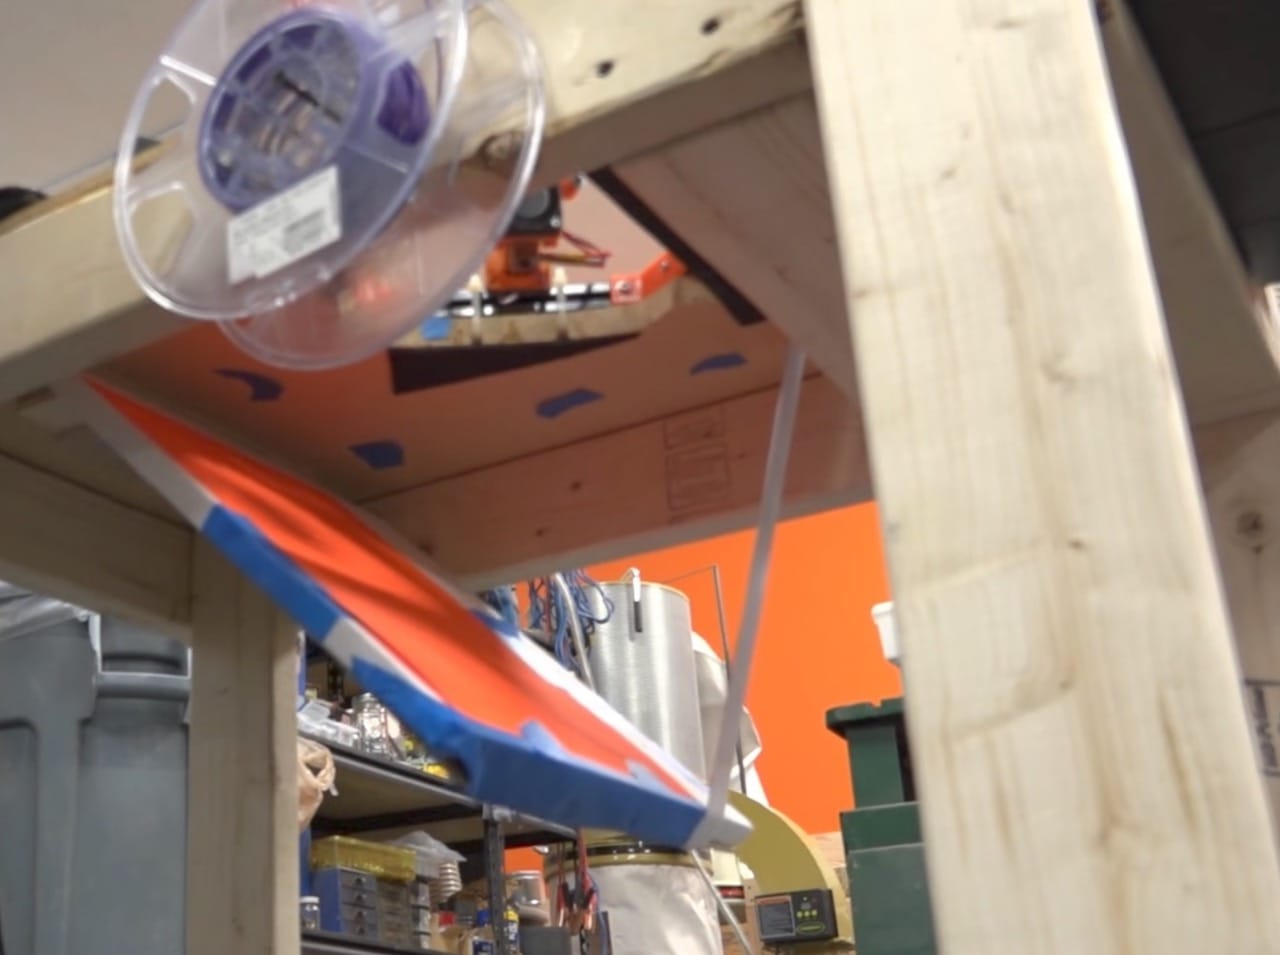 The open trap door allows the 3D print to fall into a bin below the printer